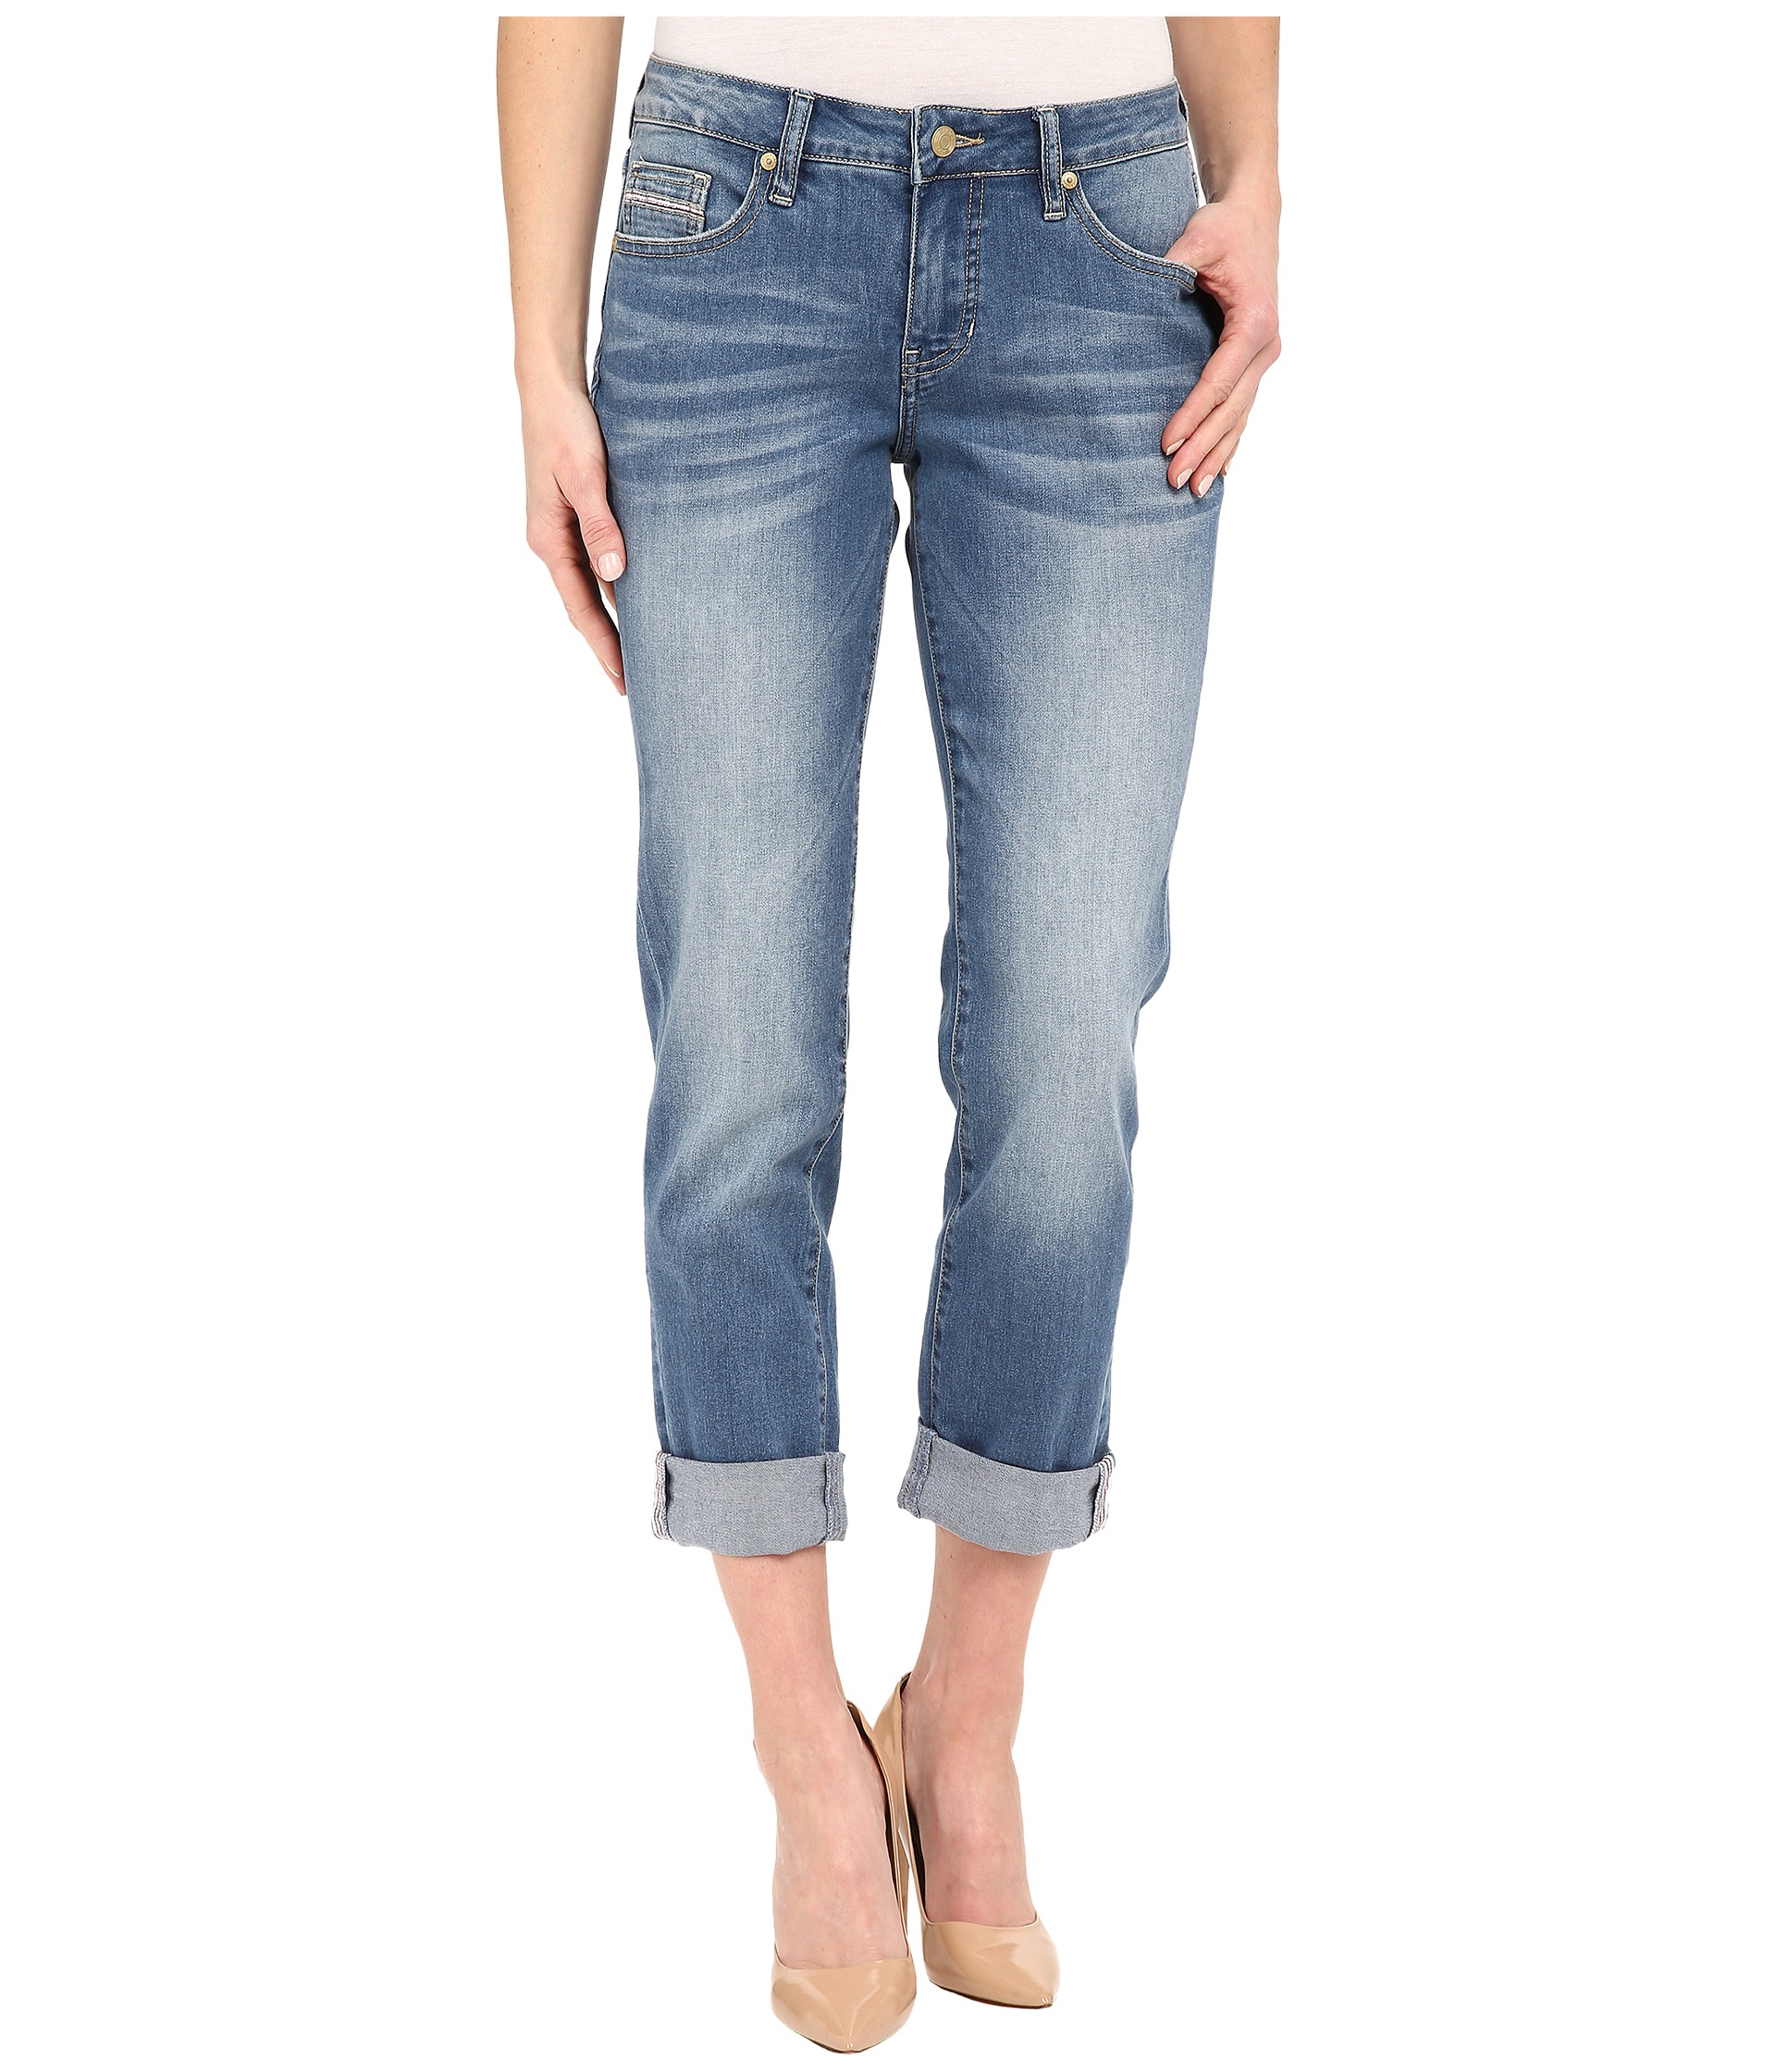 Jag Jeans Alex Boyfriend Capital Denim in Rock Water Blue Rock Water Blue - Zappos.com Free ...